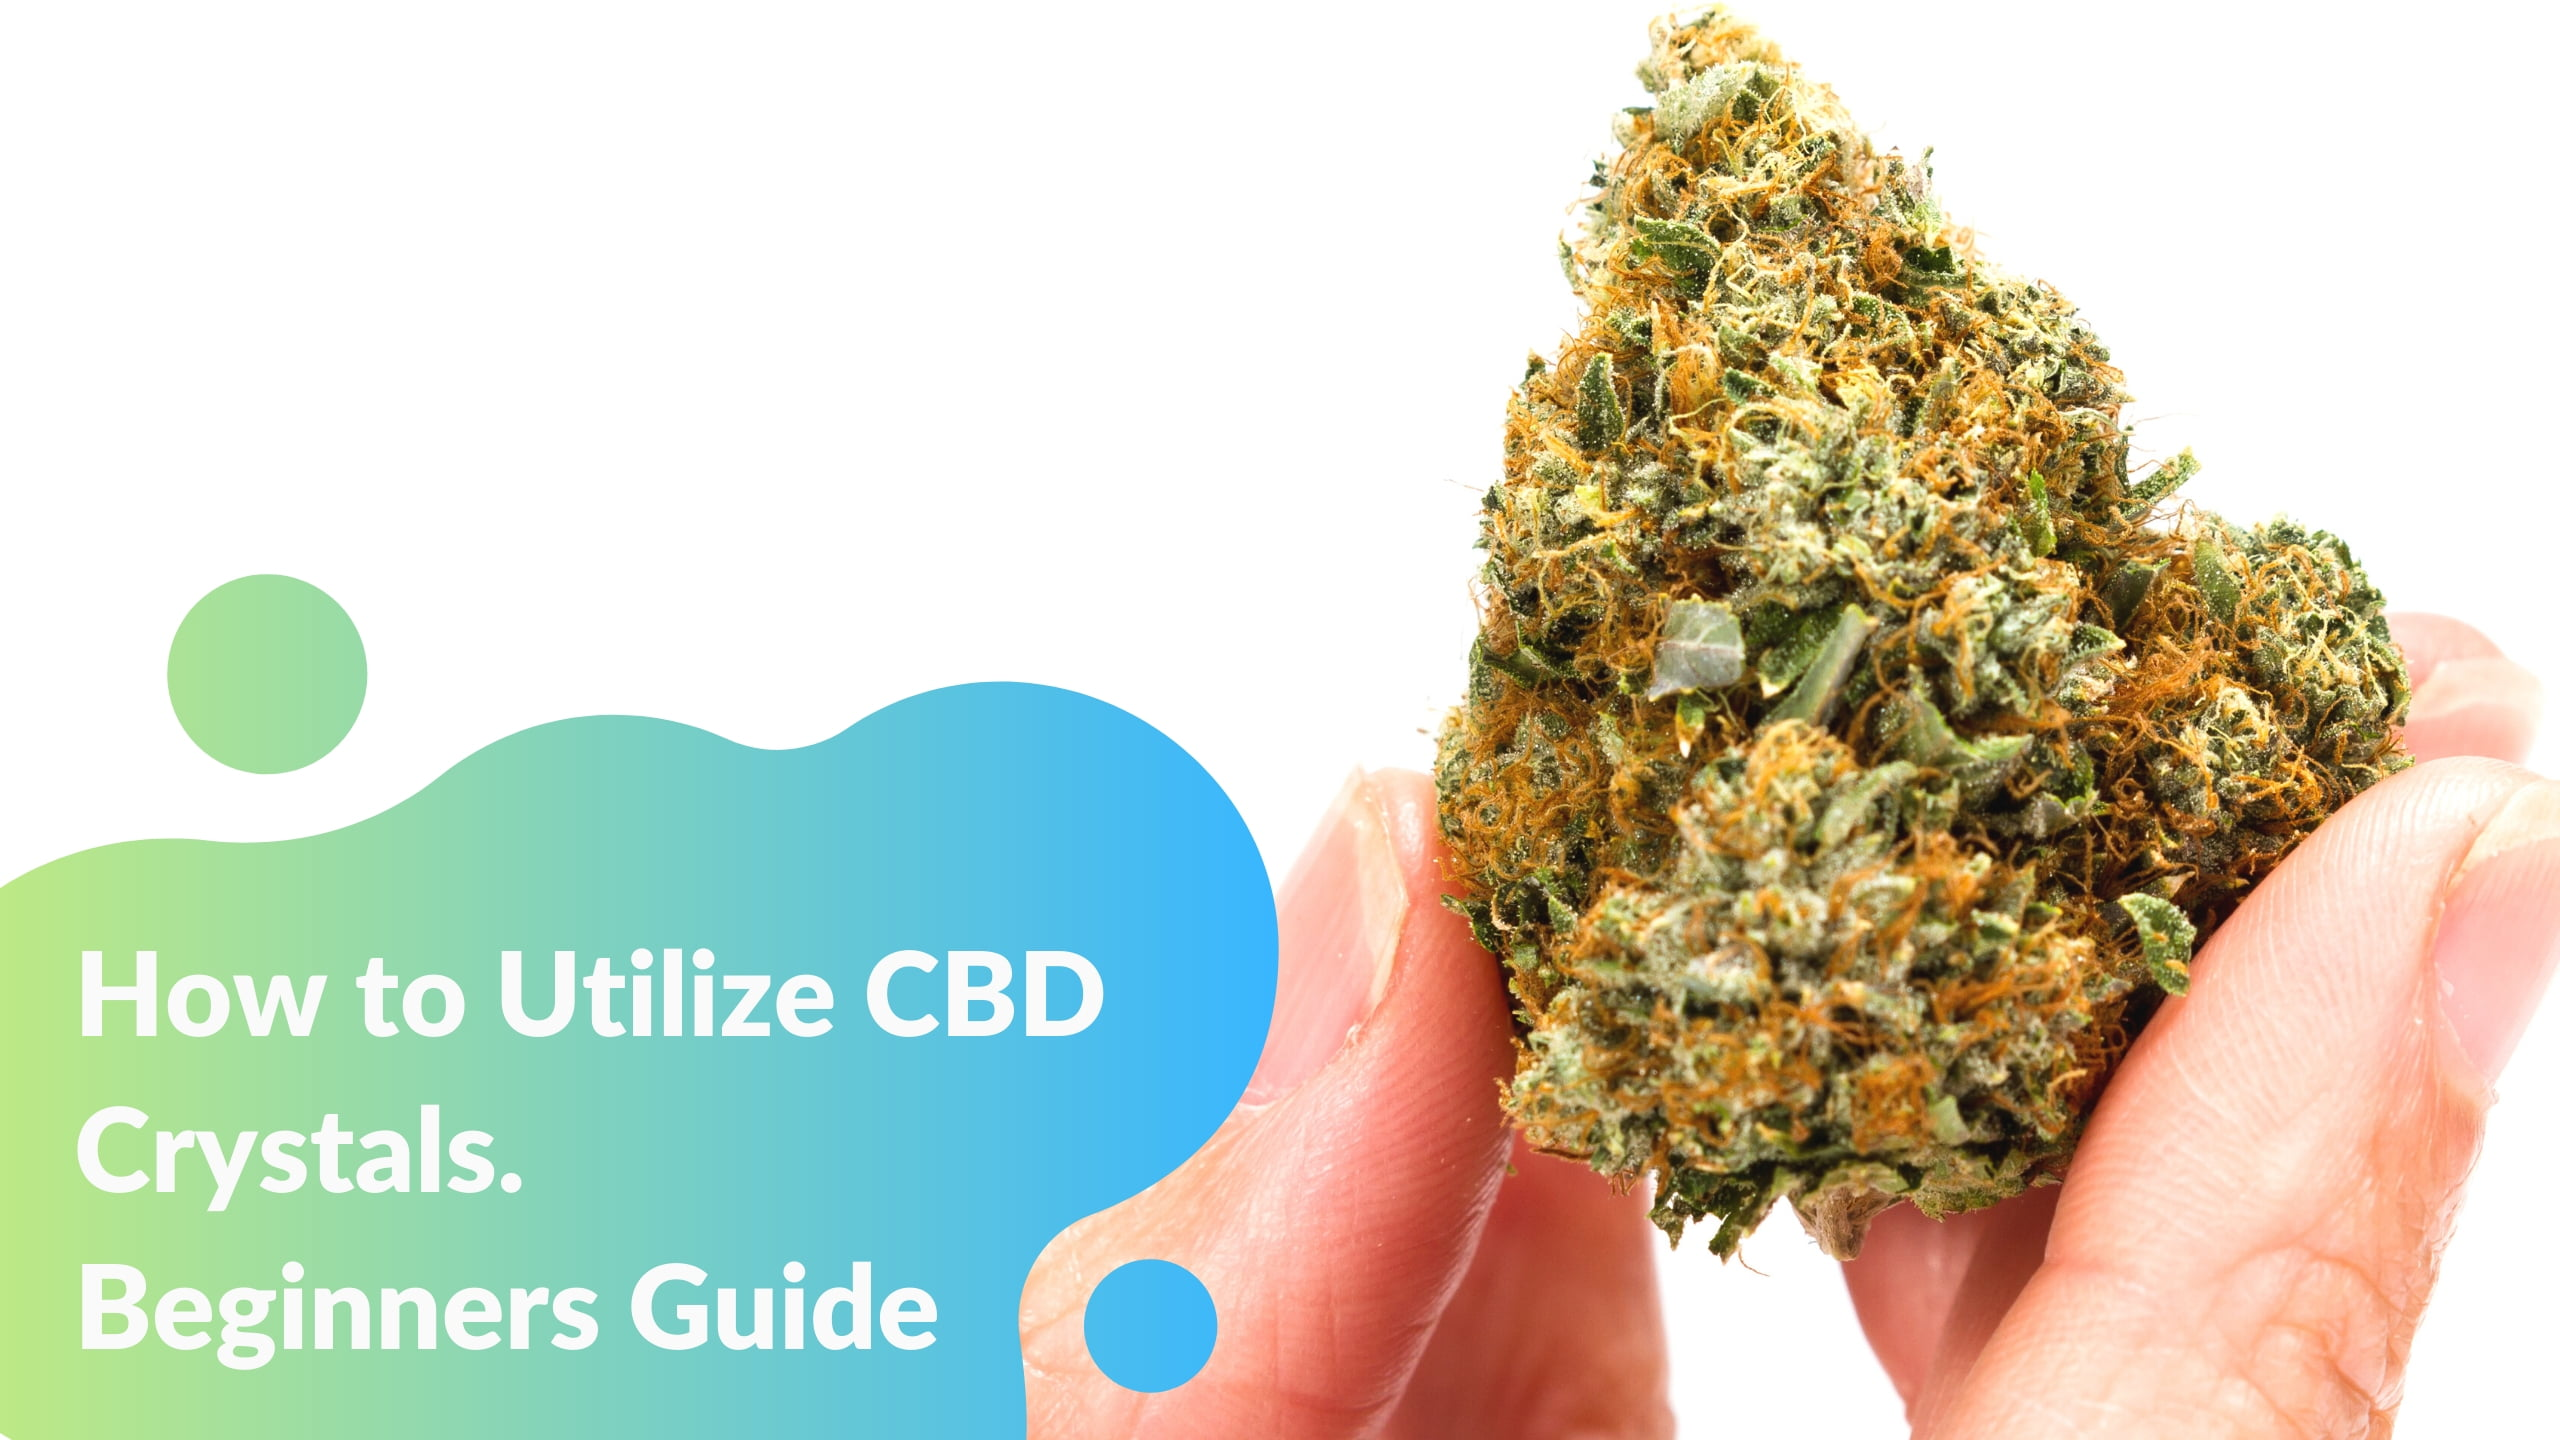 How to Utilize CBD Crystals- Beginners Guide